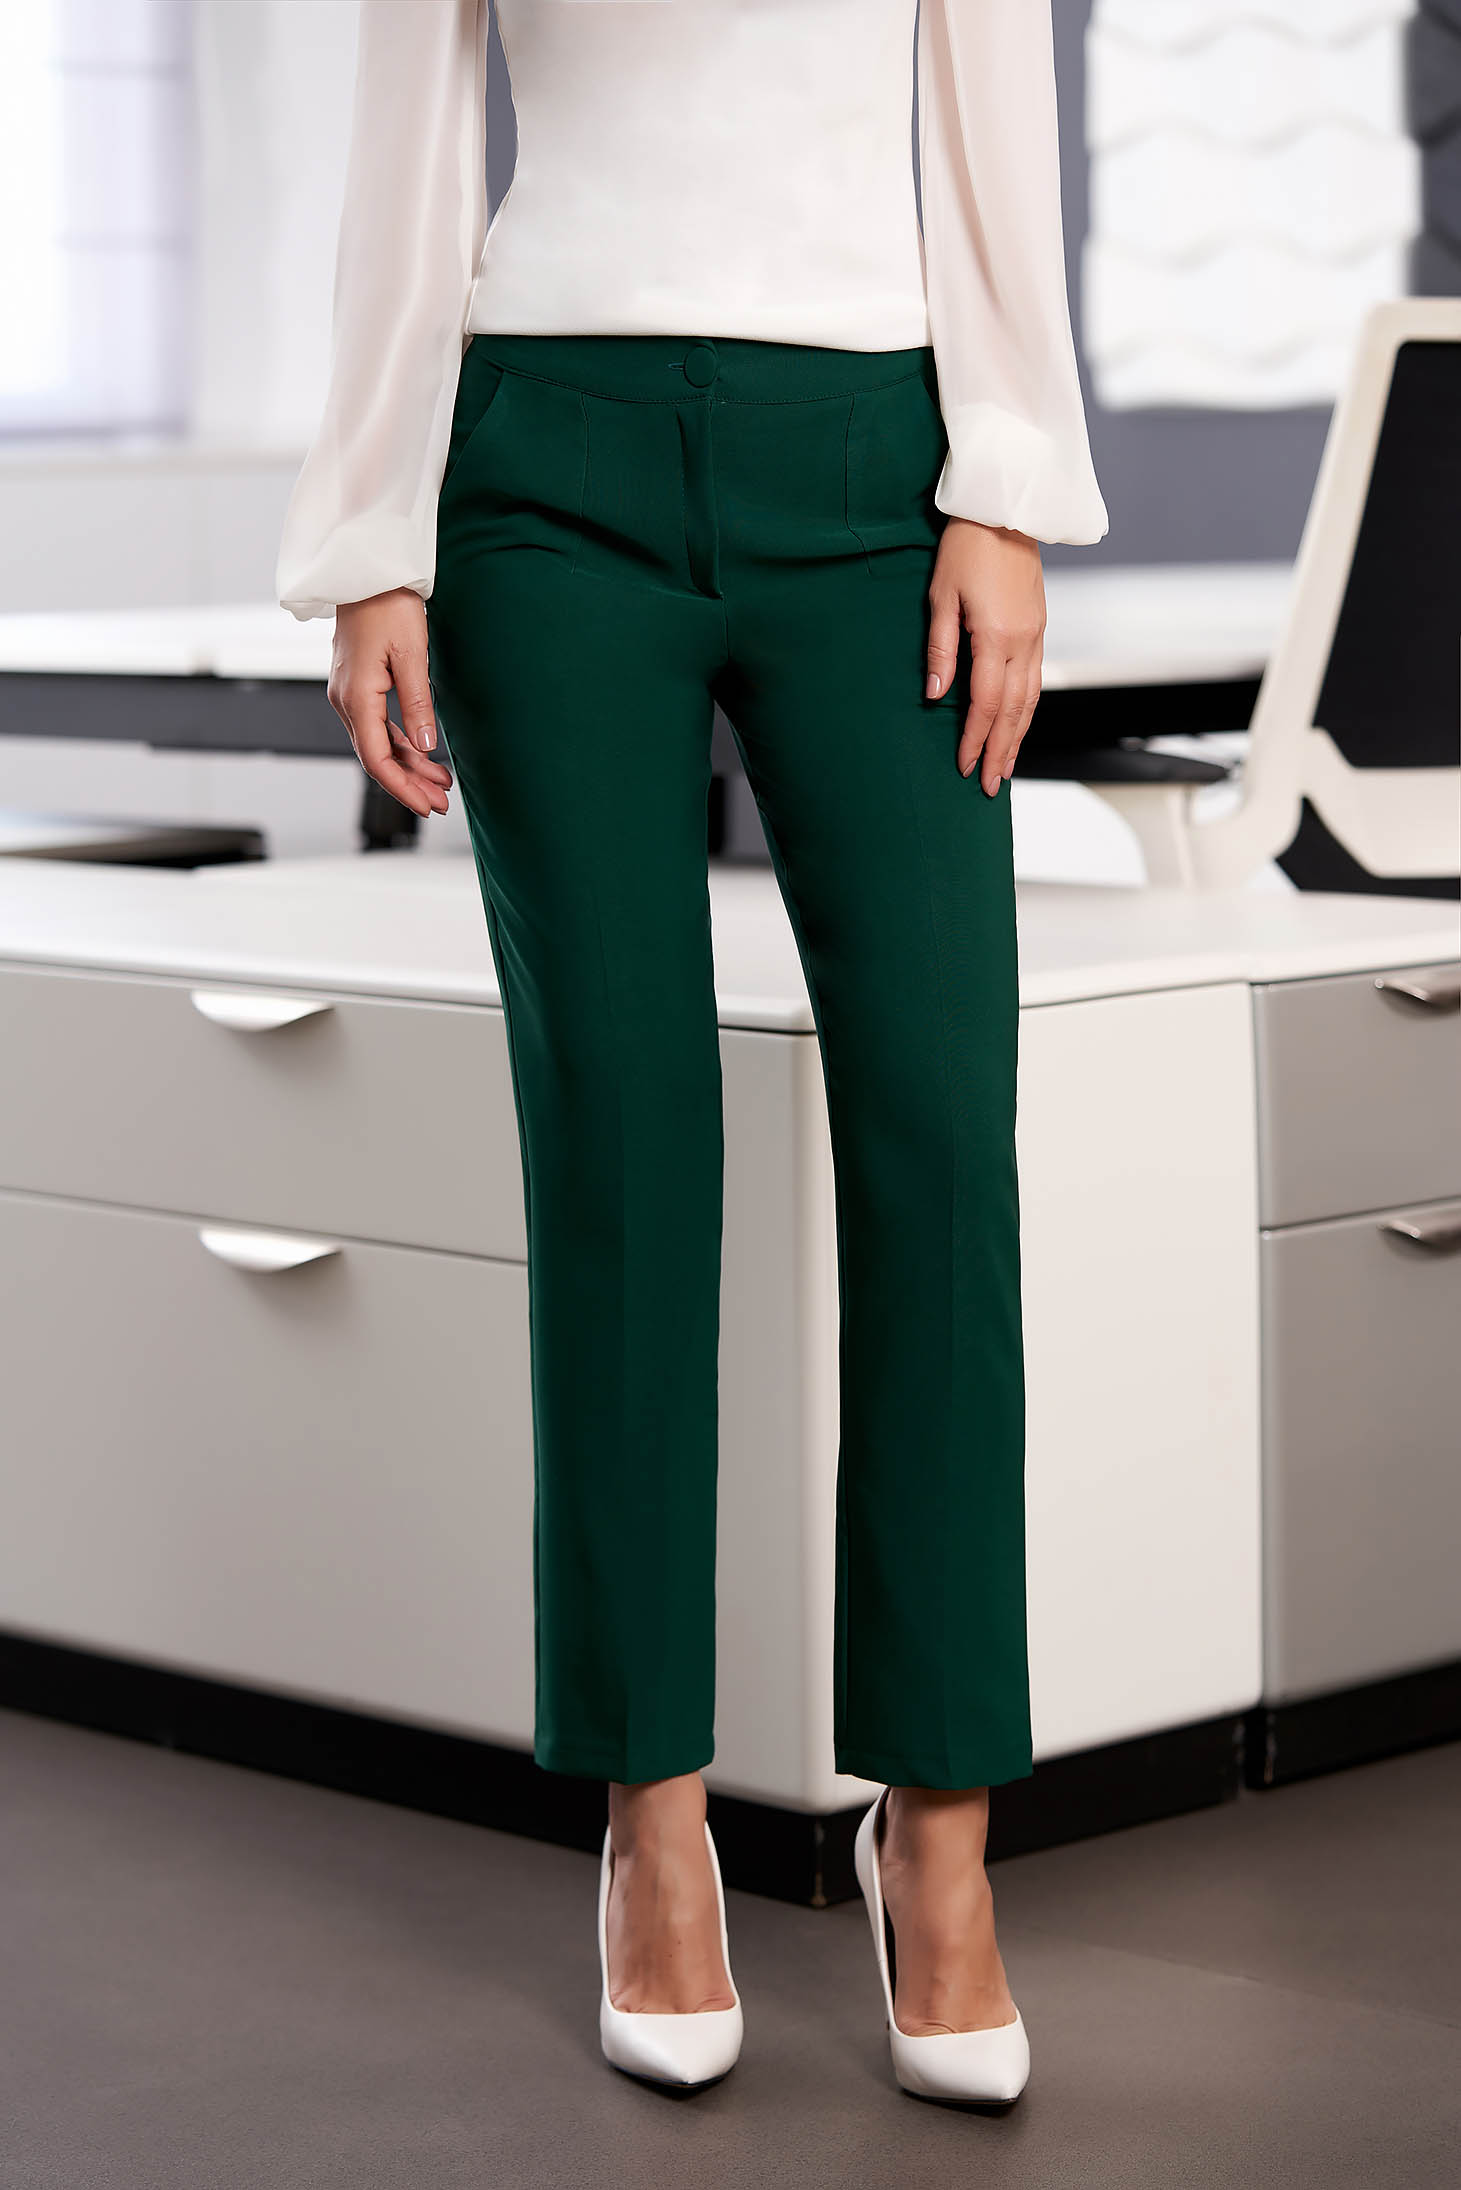 StarShinerS green office trousers with pockets medium waist slightly elastic fabric with straight cut